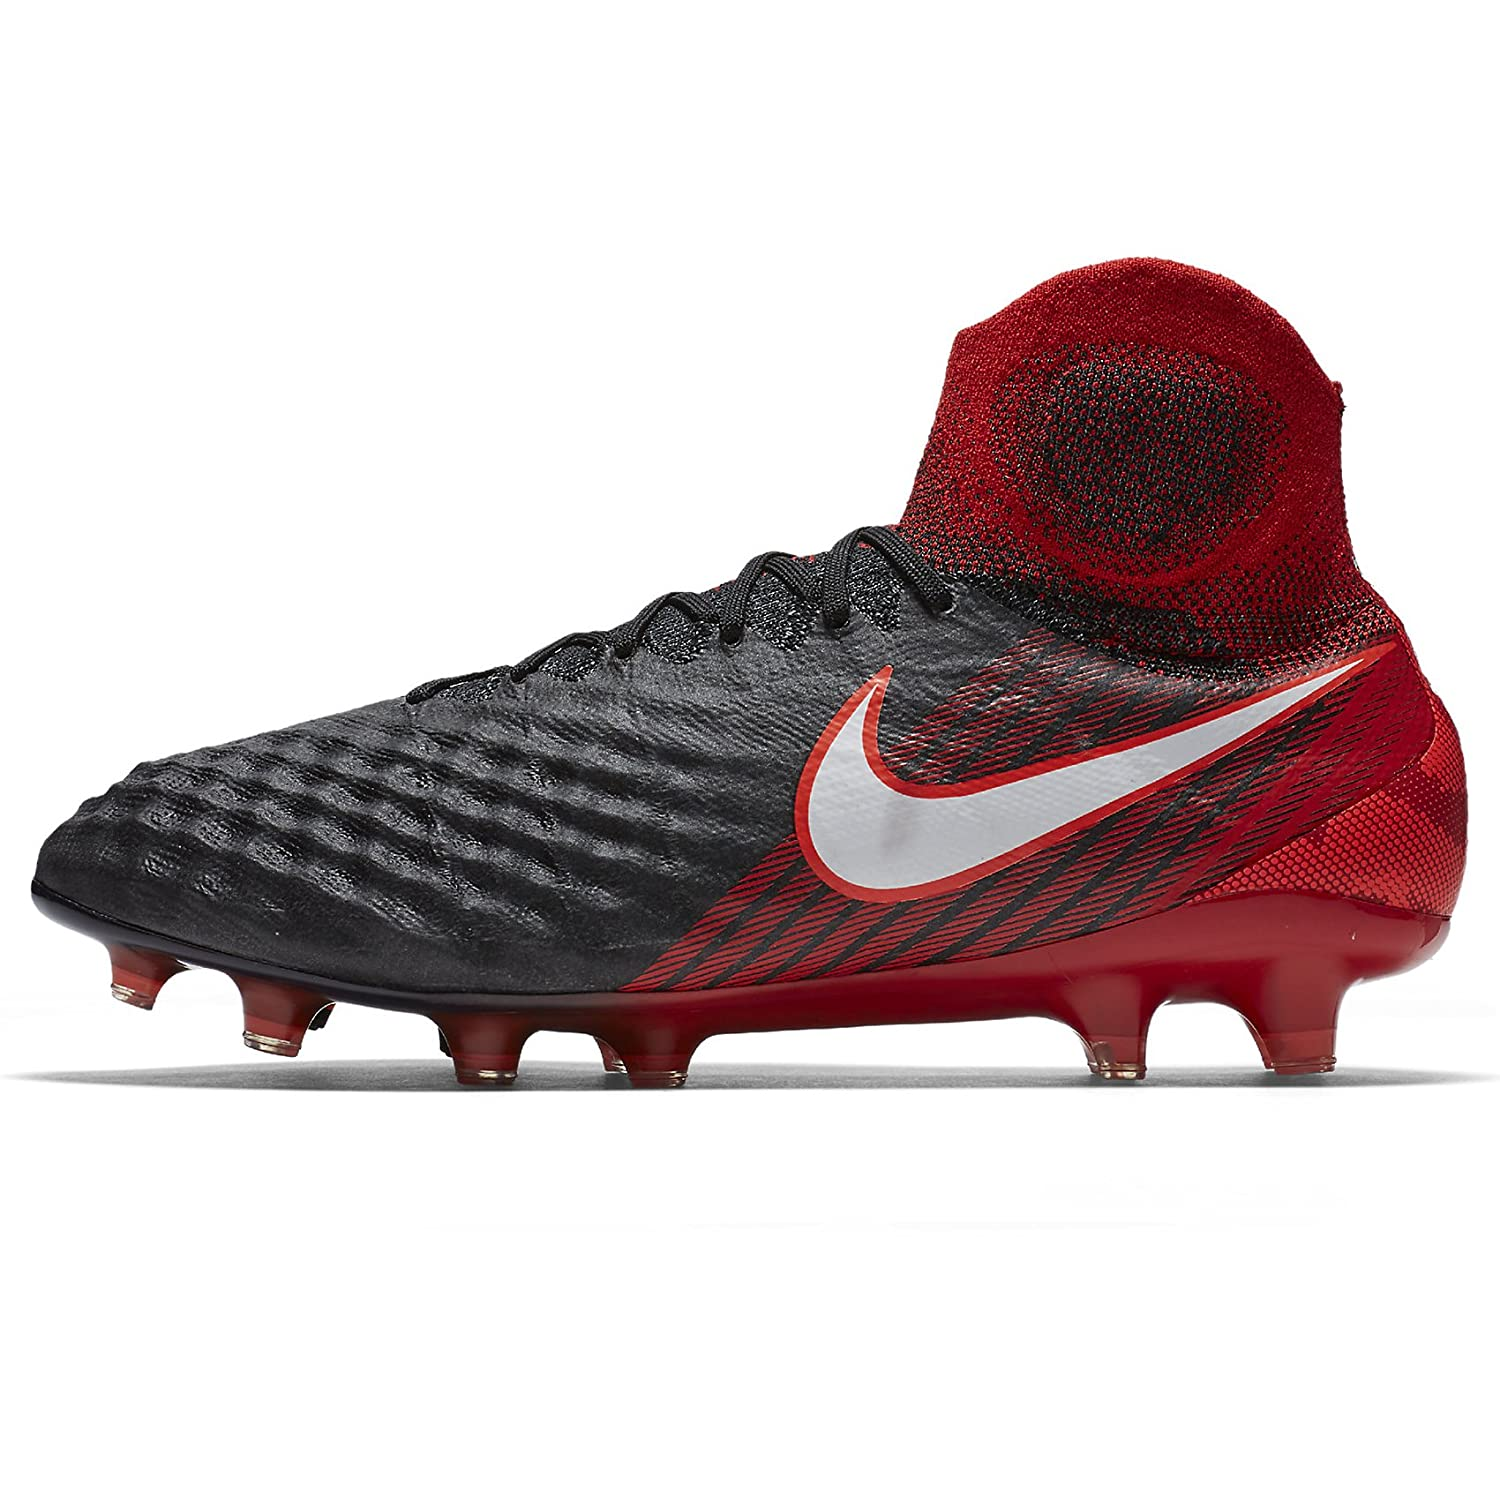 cbd96d6259d0 Nike Men s Magista Obra Ii Fg Football Boots  Amazon.co.uk  Shoes   Bags